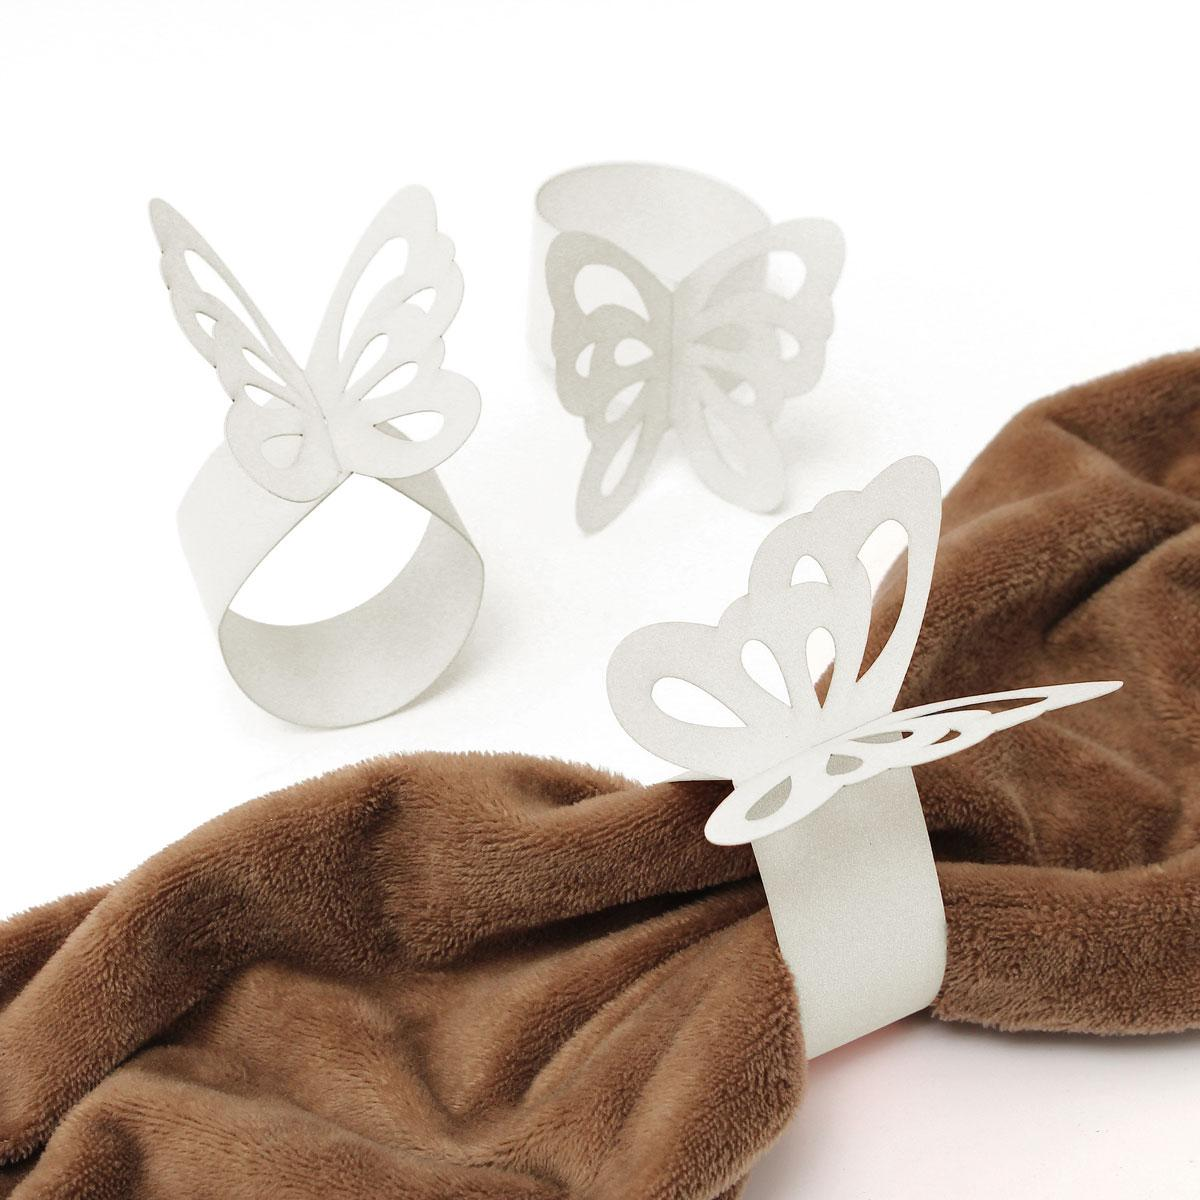 50pcs Mutil Colors Paper Butterfly Napkin Rings Wedding Dinner Party Hotel Diy White Buy Sell Online Best Prices In Srilanka Daraz Lk